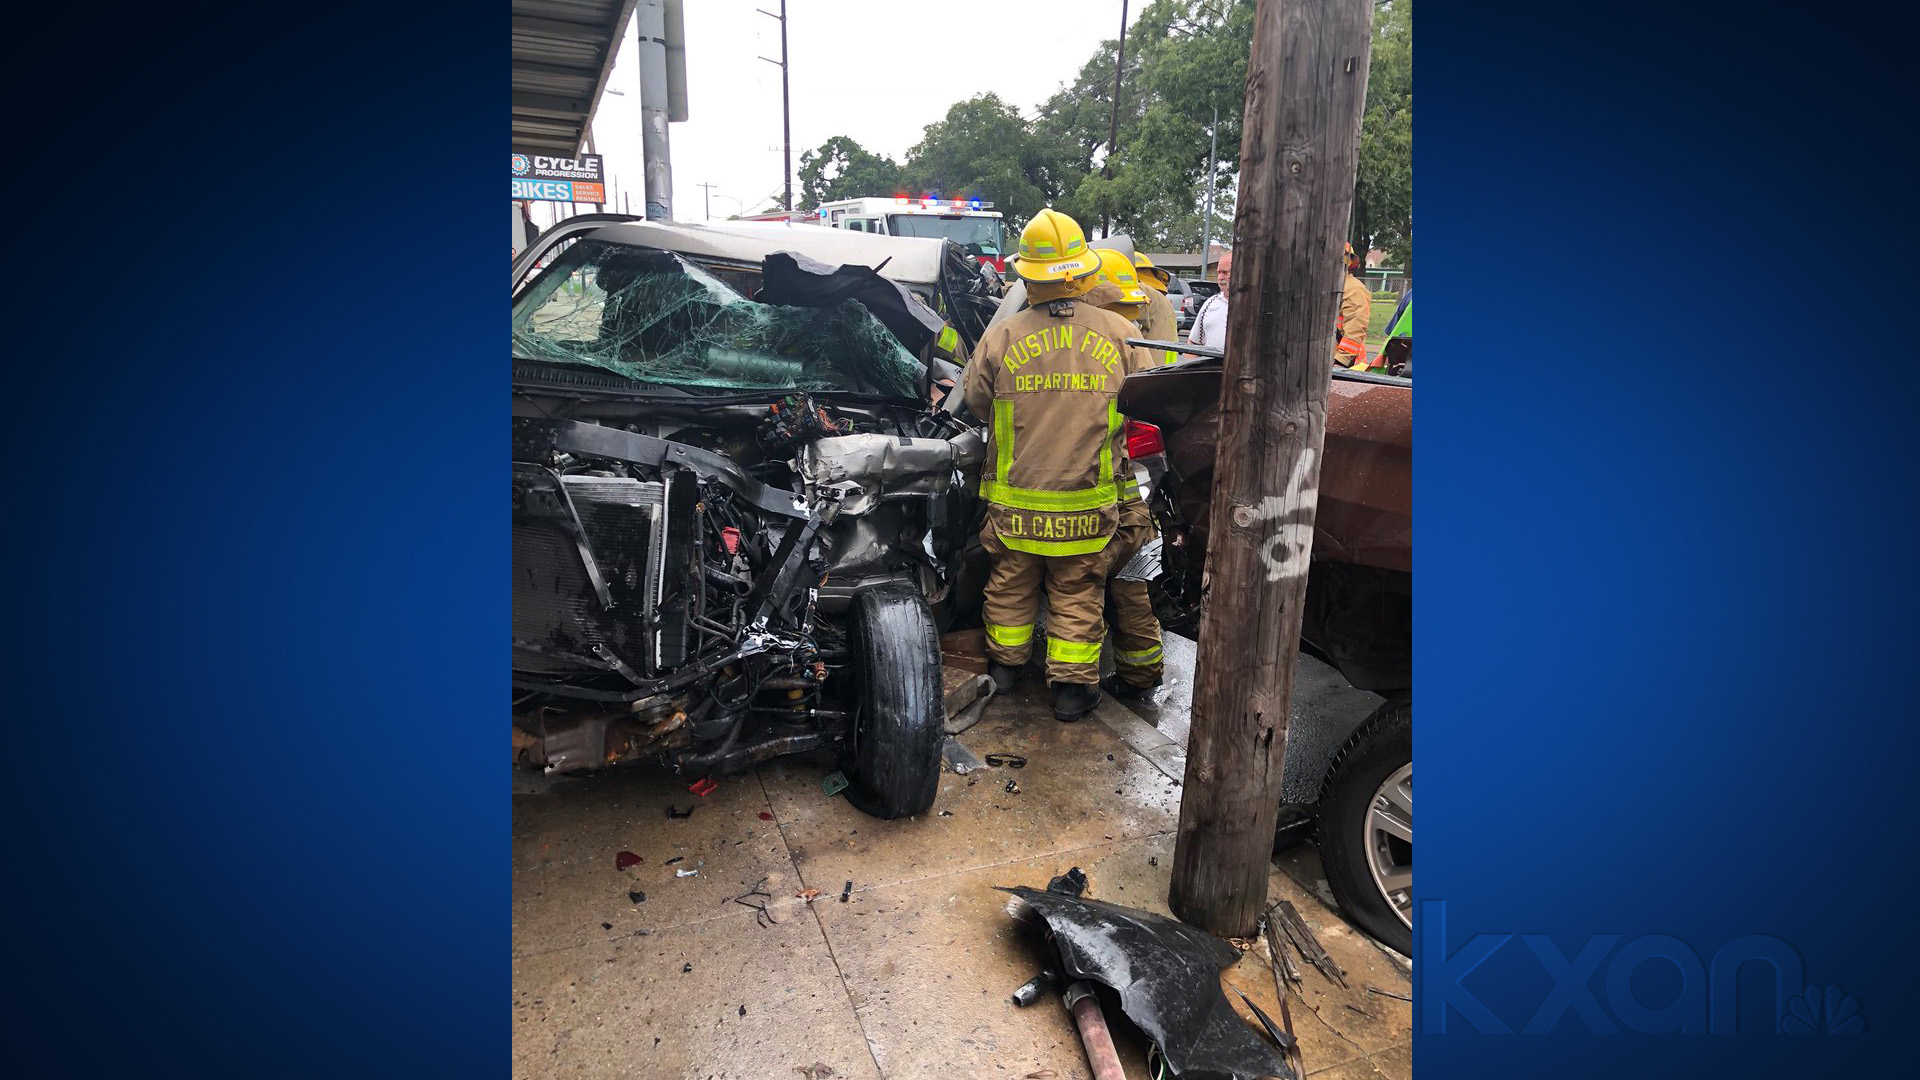 Man rescued from vehicle after pickup truck crashed into building at 4023 Guadalupe St. in Austin on Sept. 14, 2018